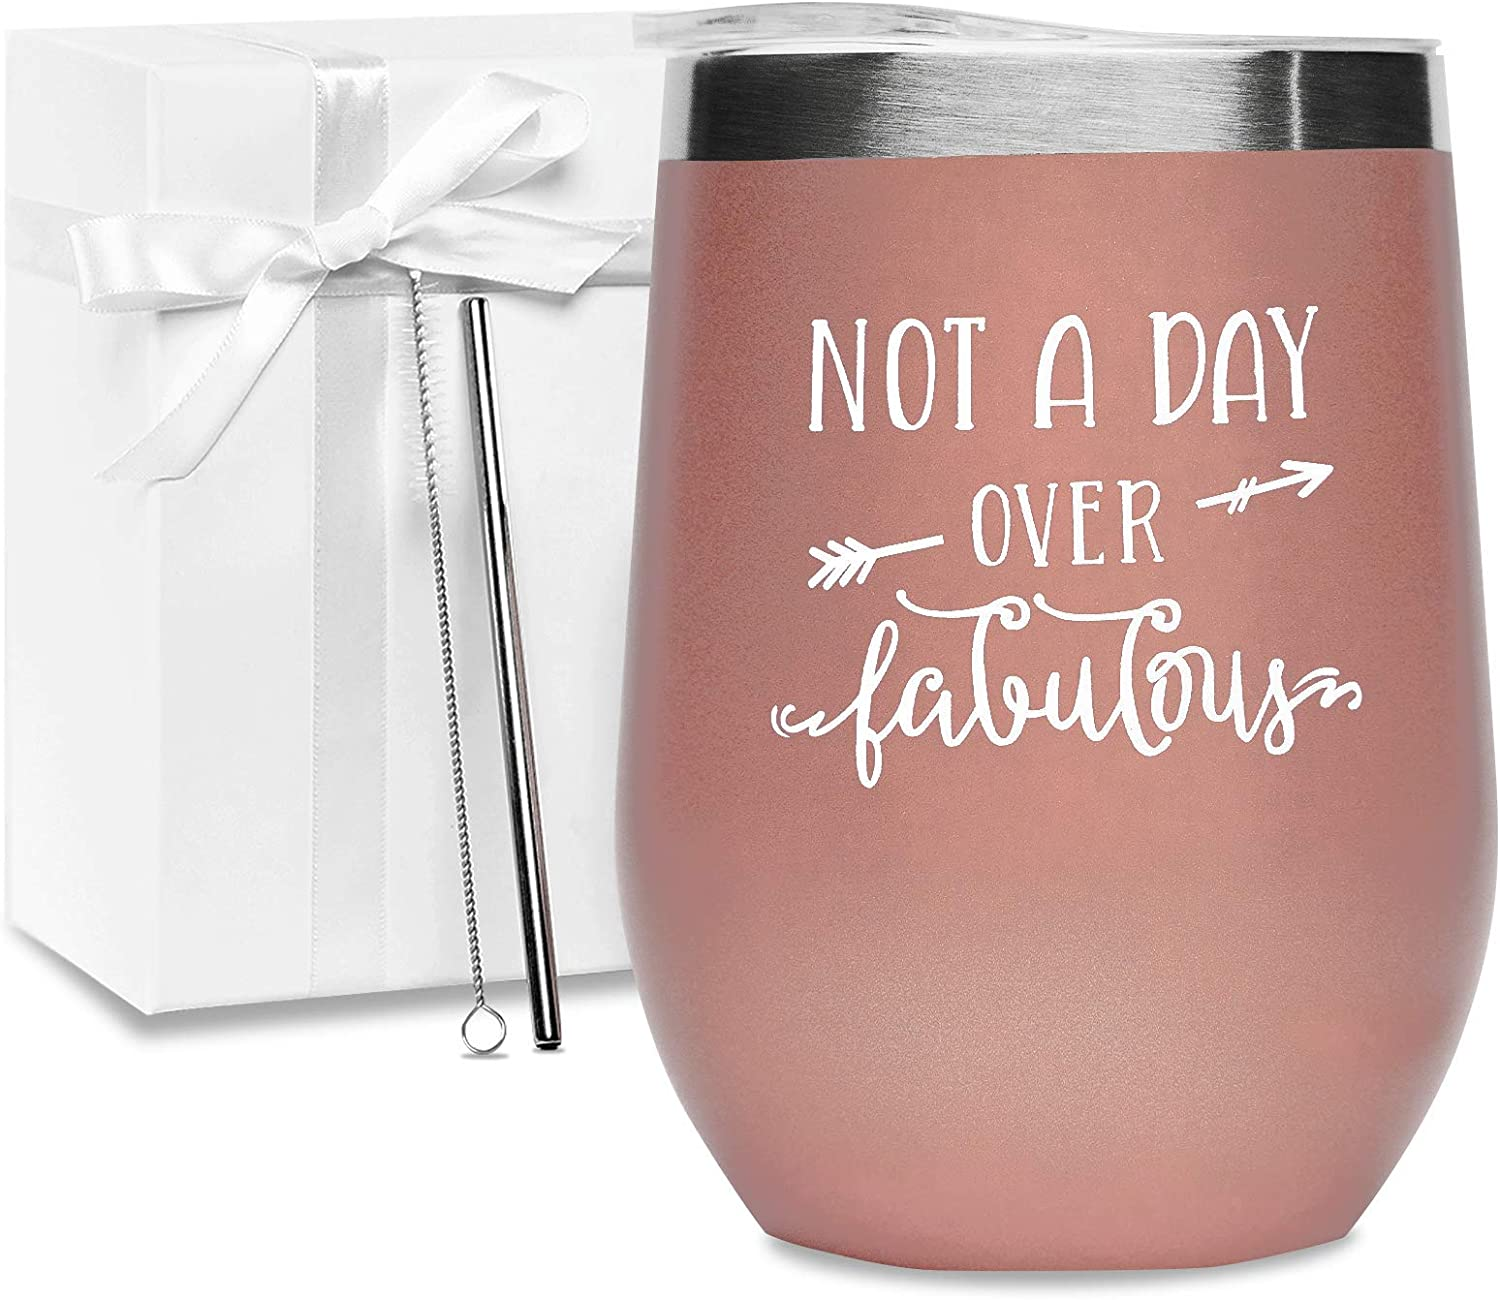 Bath Bomb Wine Gifts for Women 12oz Wine Tumbler with Lid Loofah Wine Tumbler with Saying for Friend Coworker Opener//Stopper Greeting Card Wine Gift Basket Straw Funny Birthday Gift